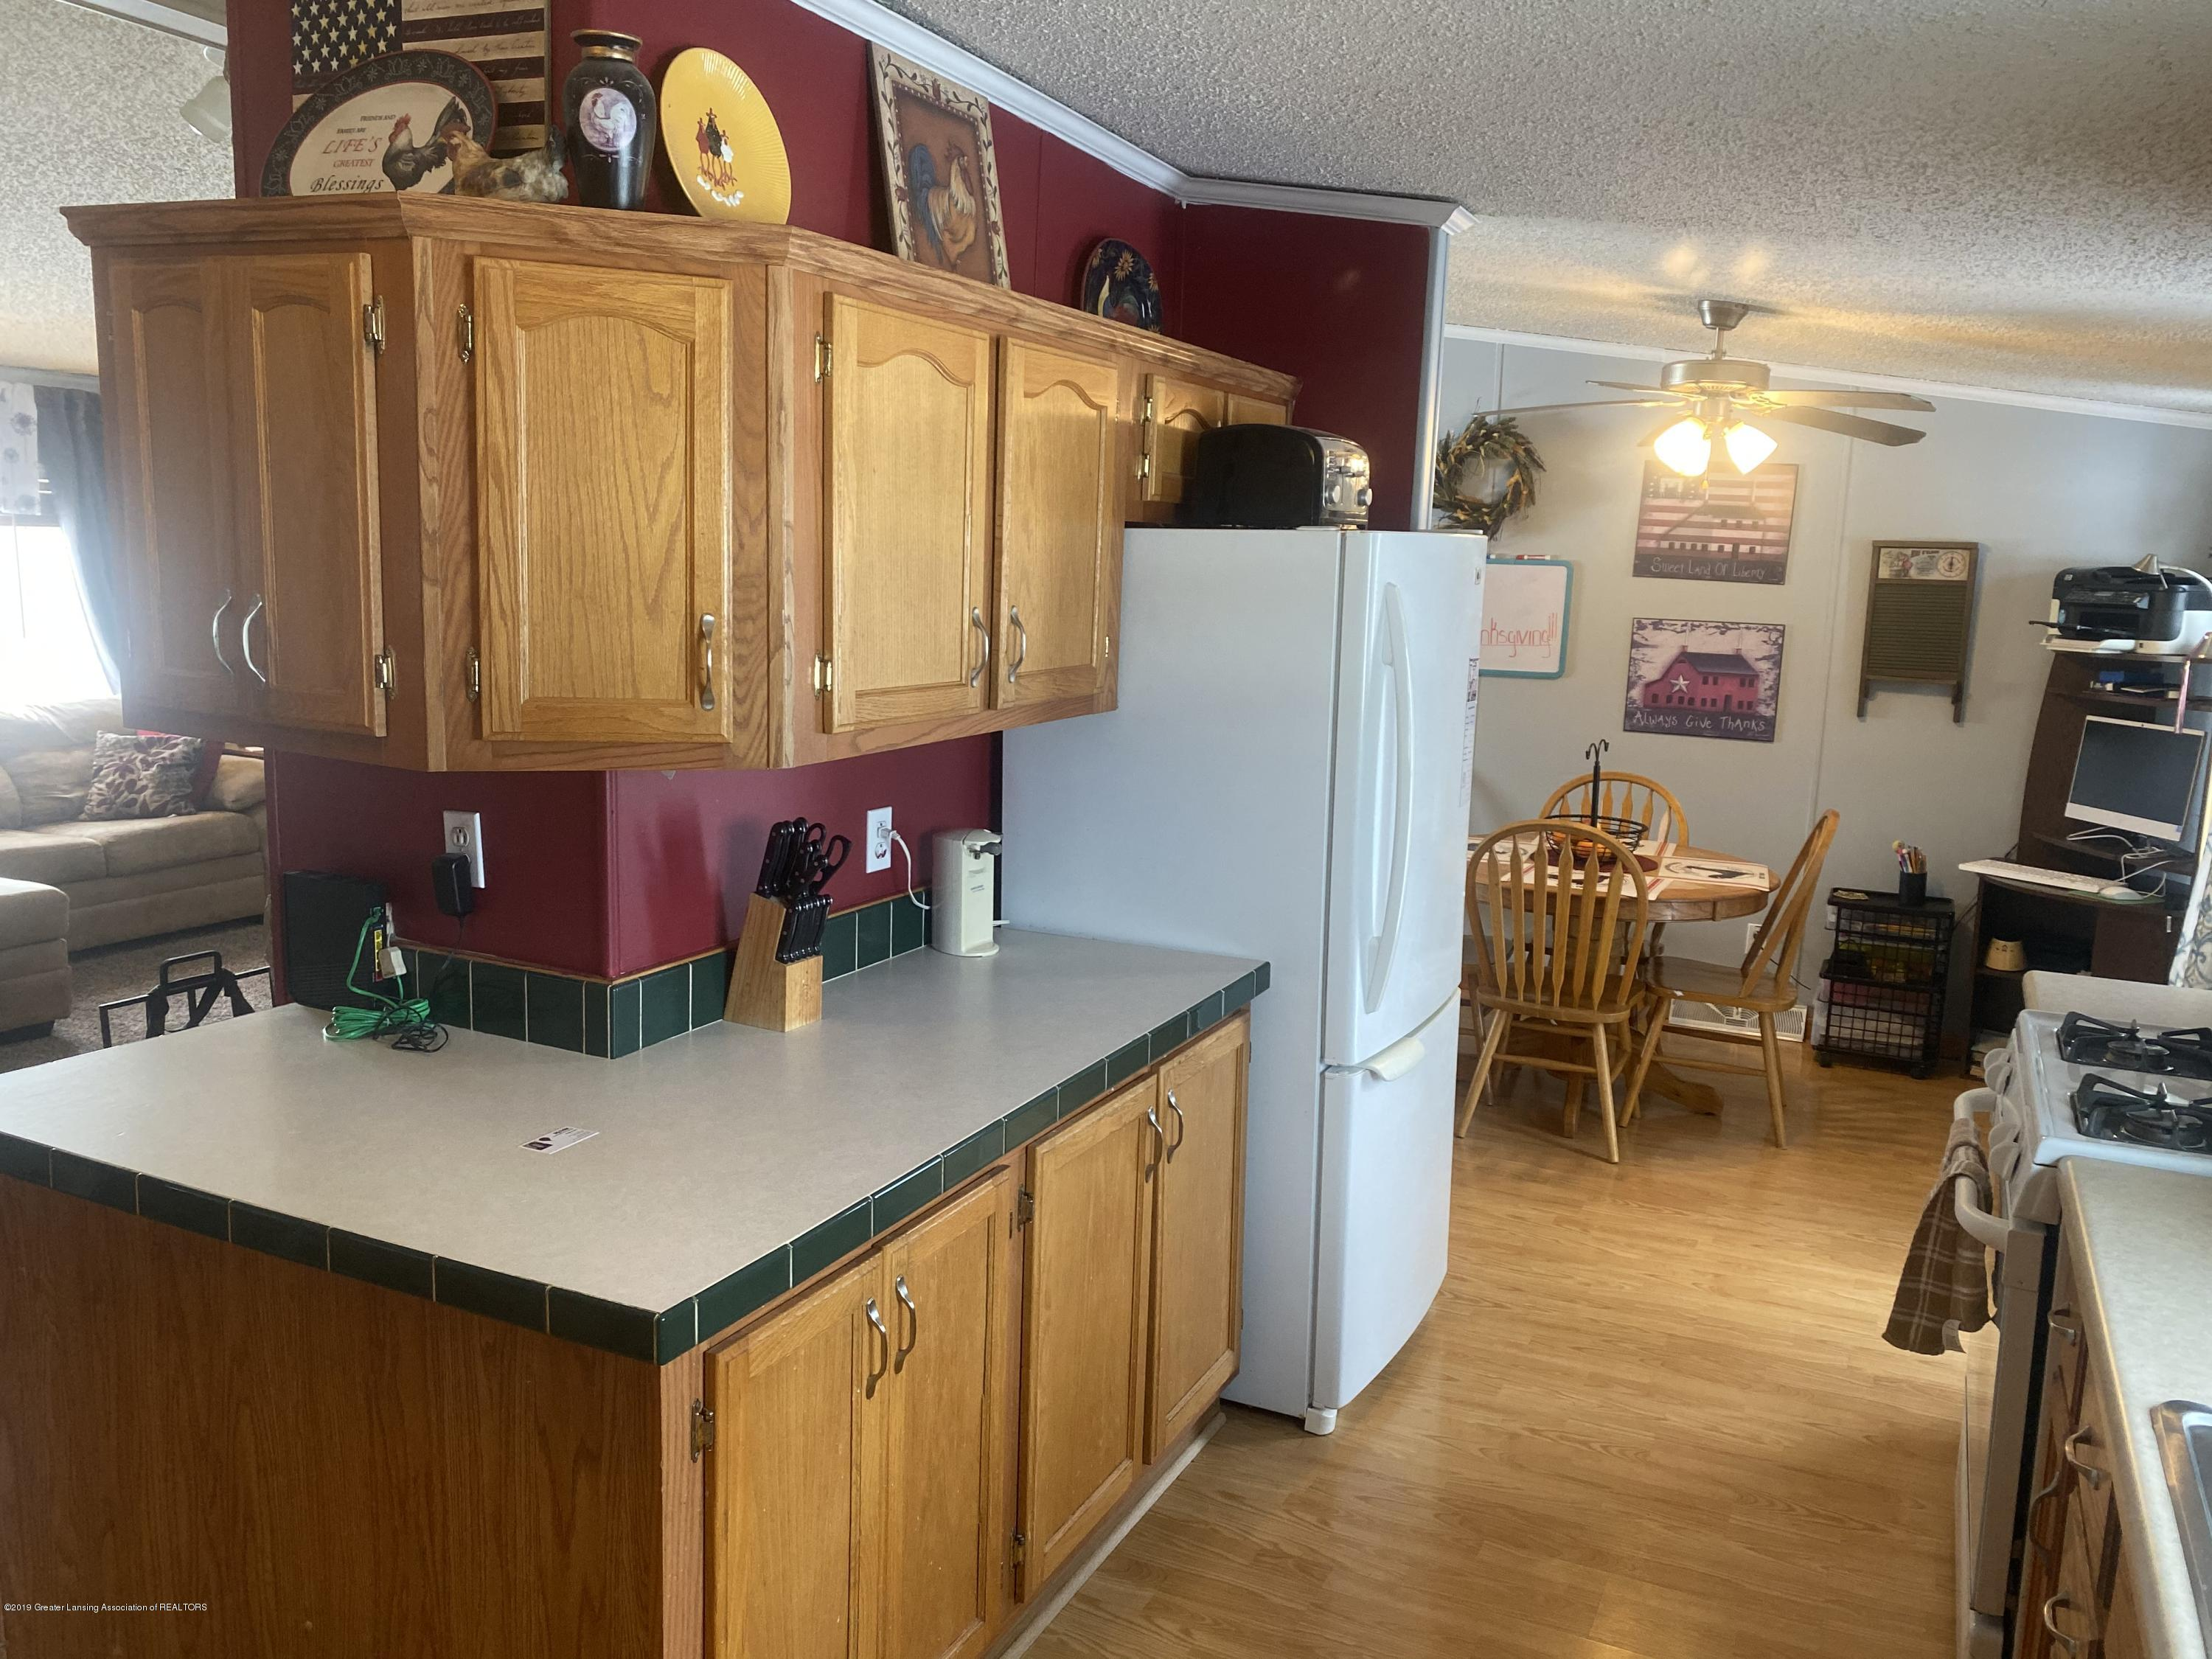 6869 N Welling Rd - KitchDining - 16